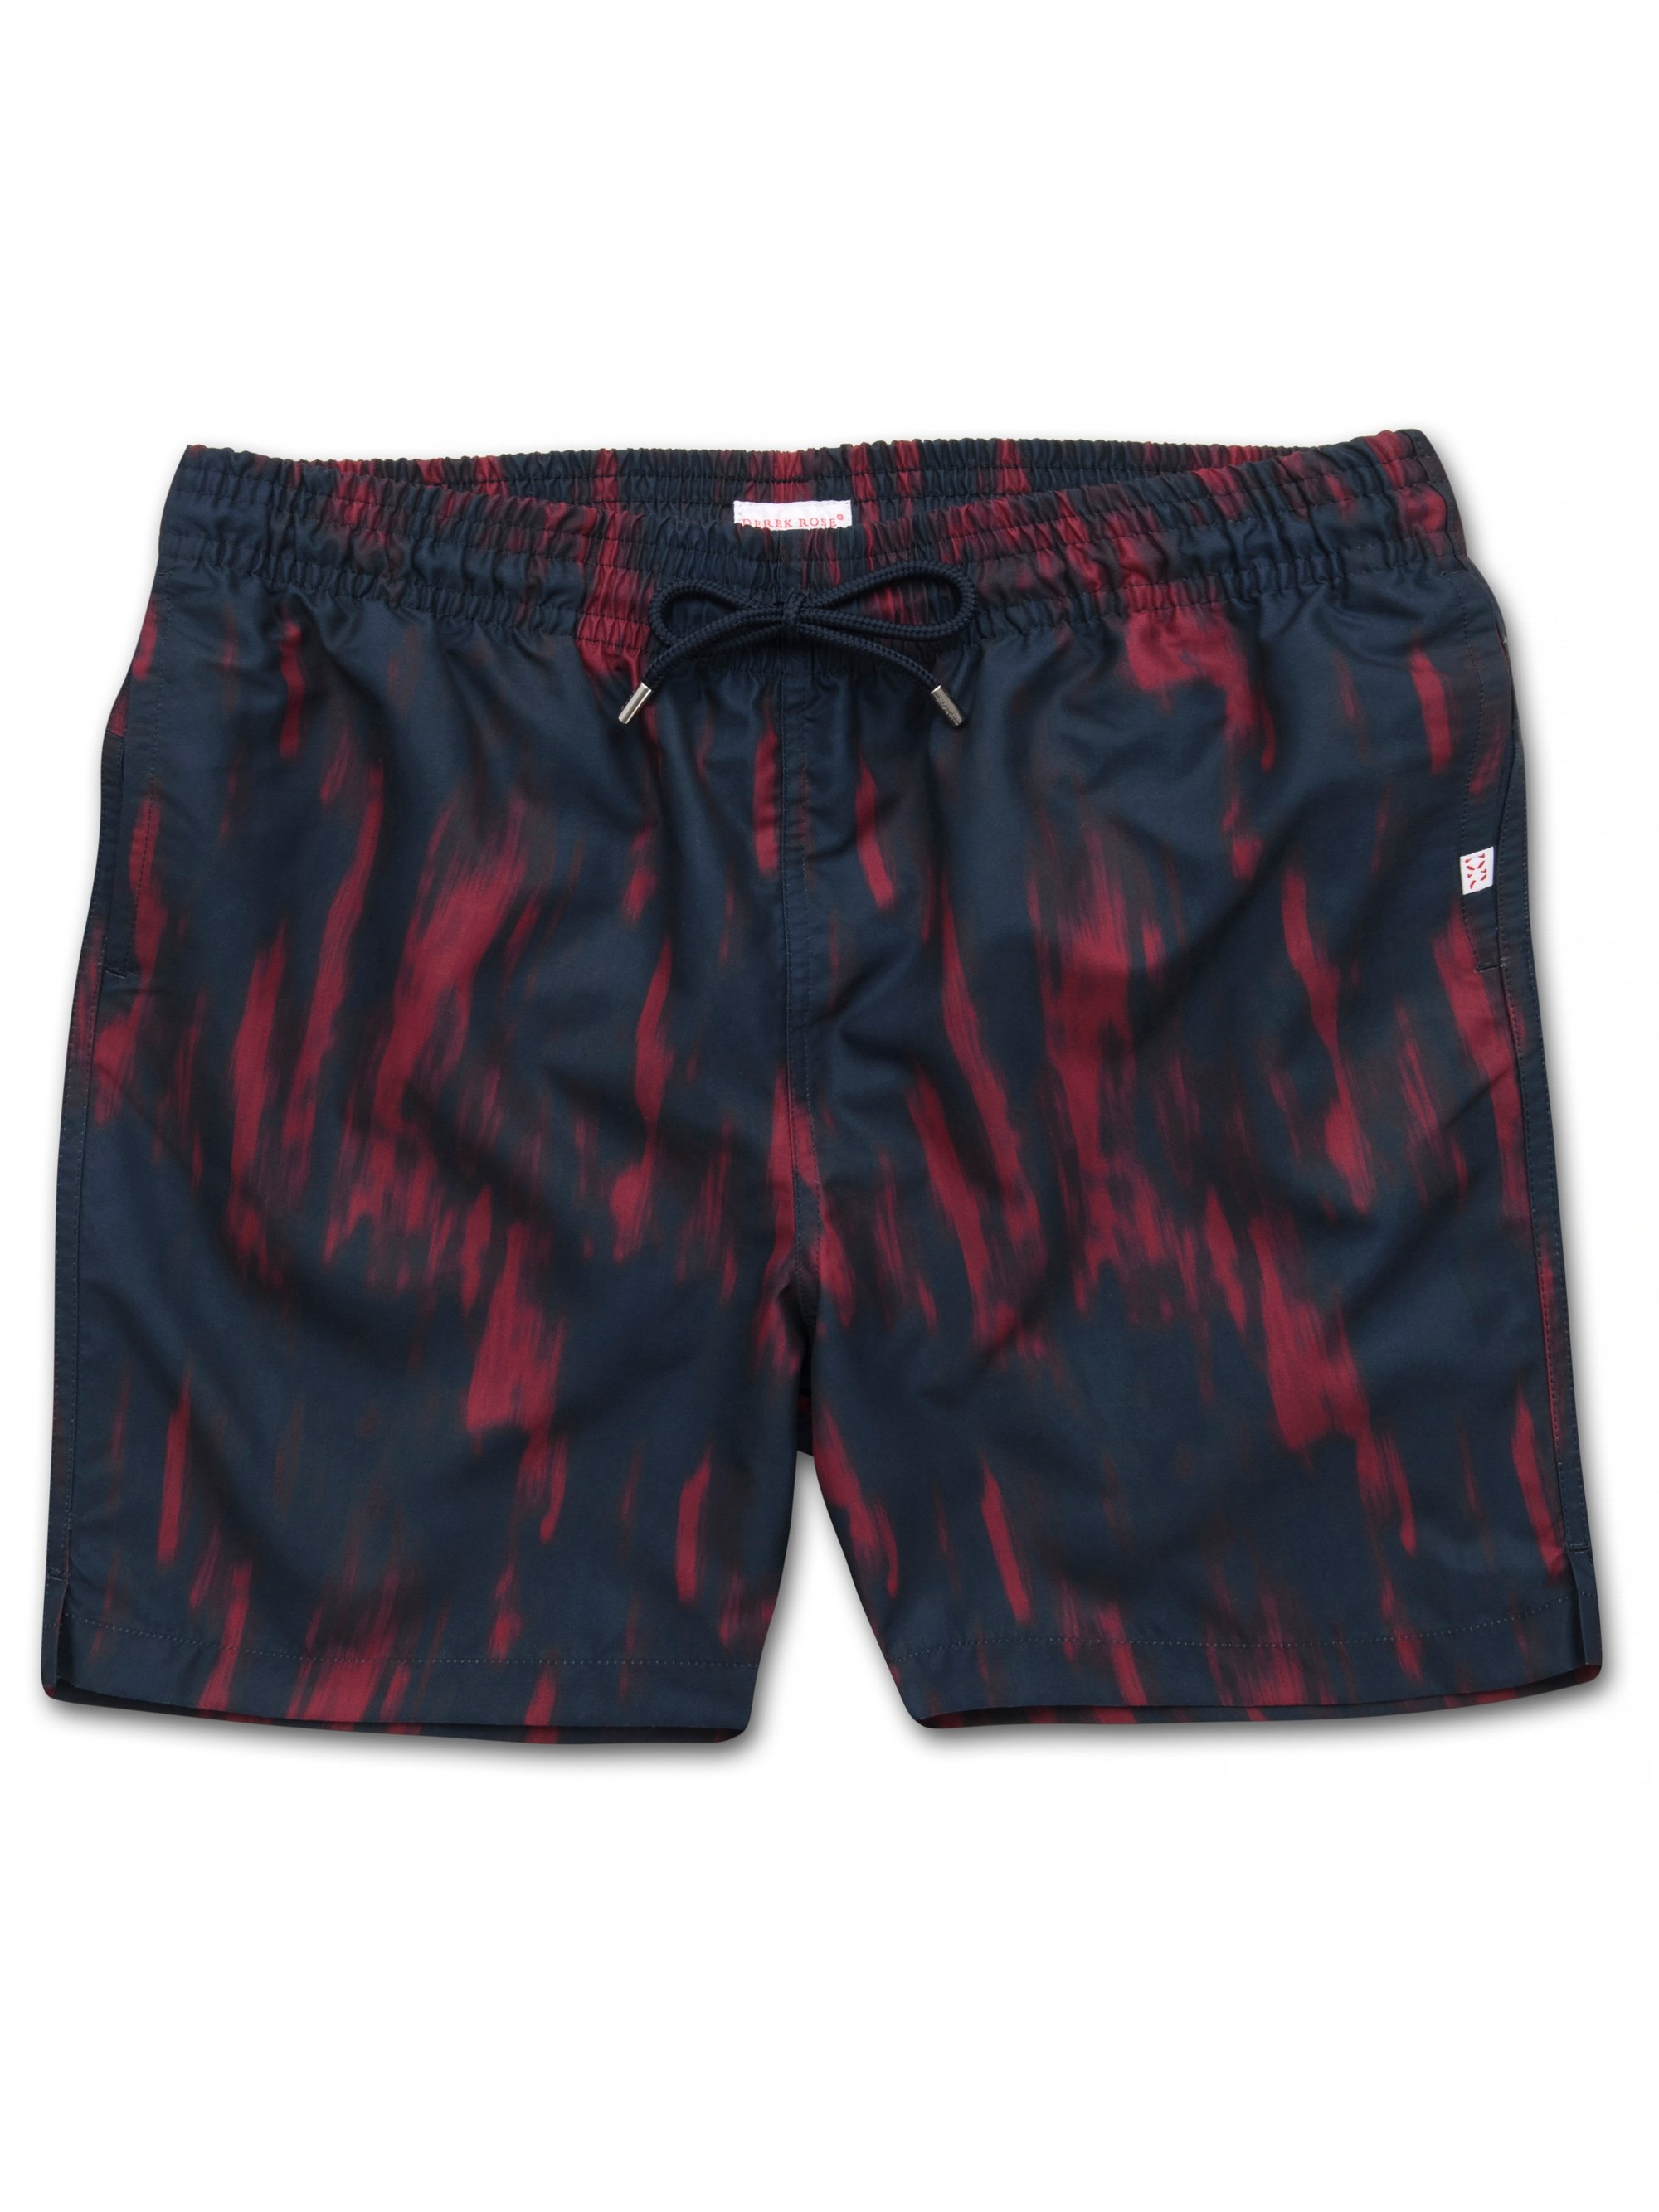 Men's Classic Fit Swim Shorts Maui 23 Red